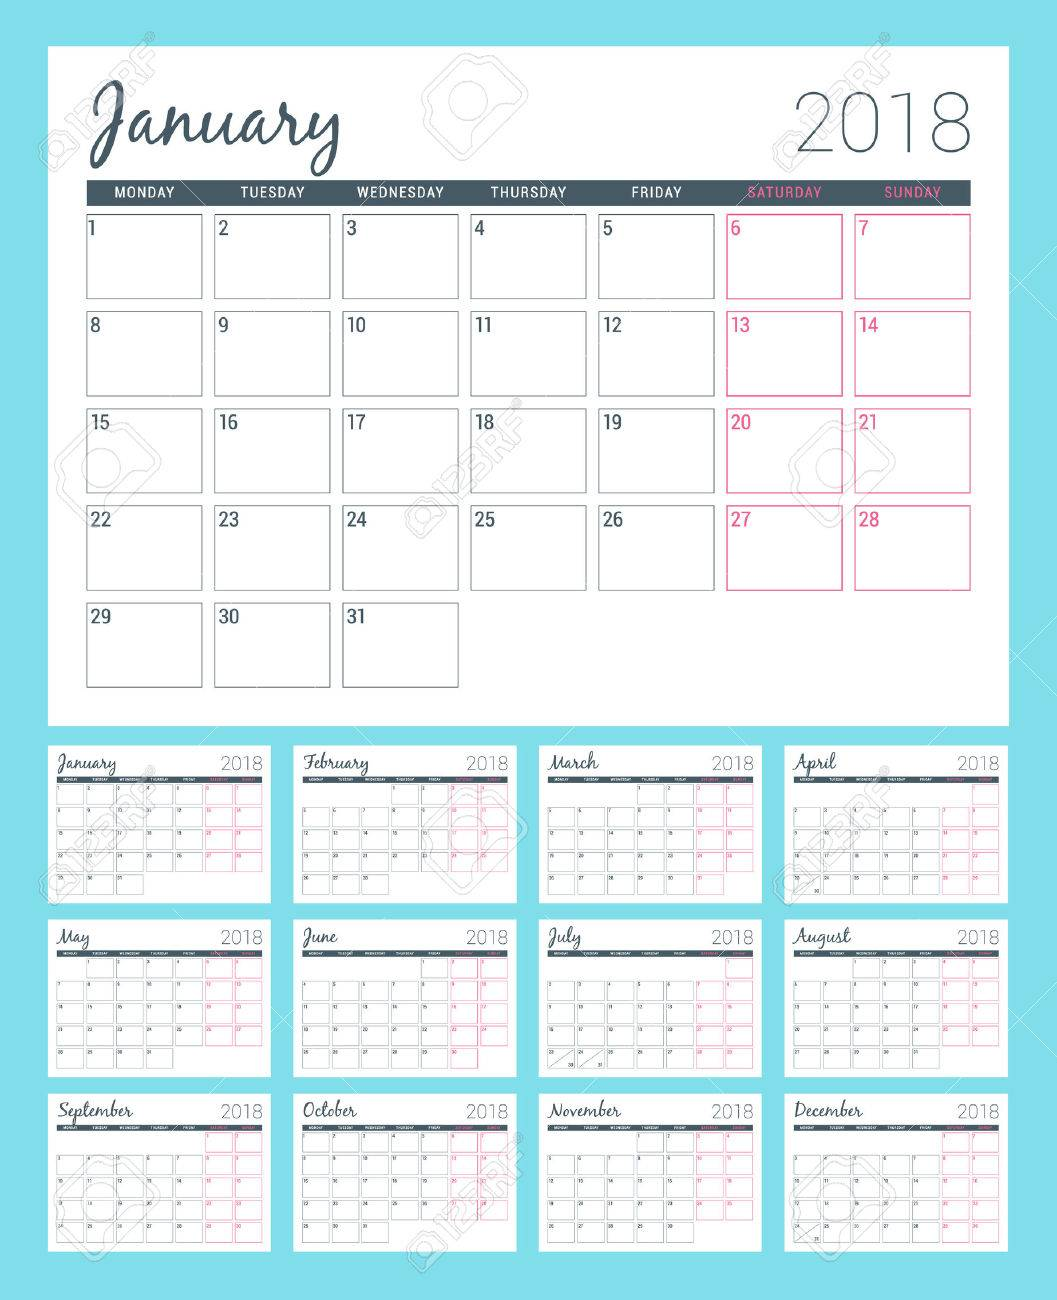 printable calendar for 2018 year planner design template week starts on monday stationery